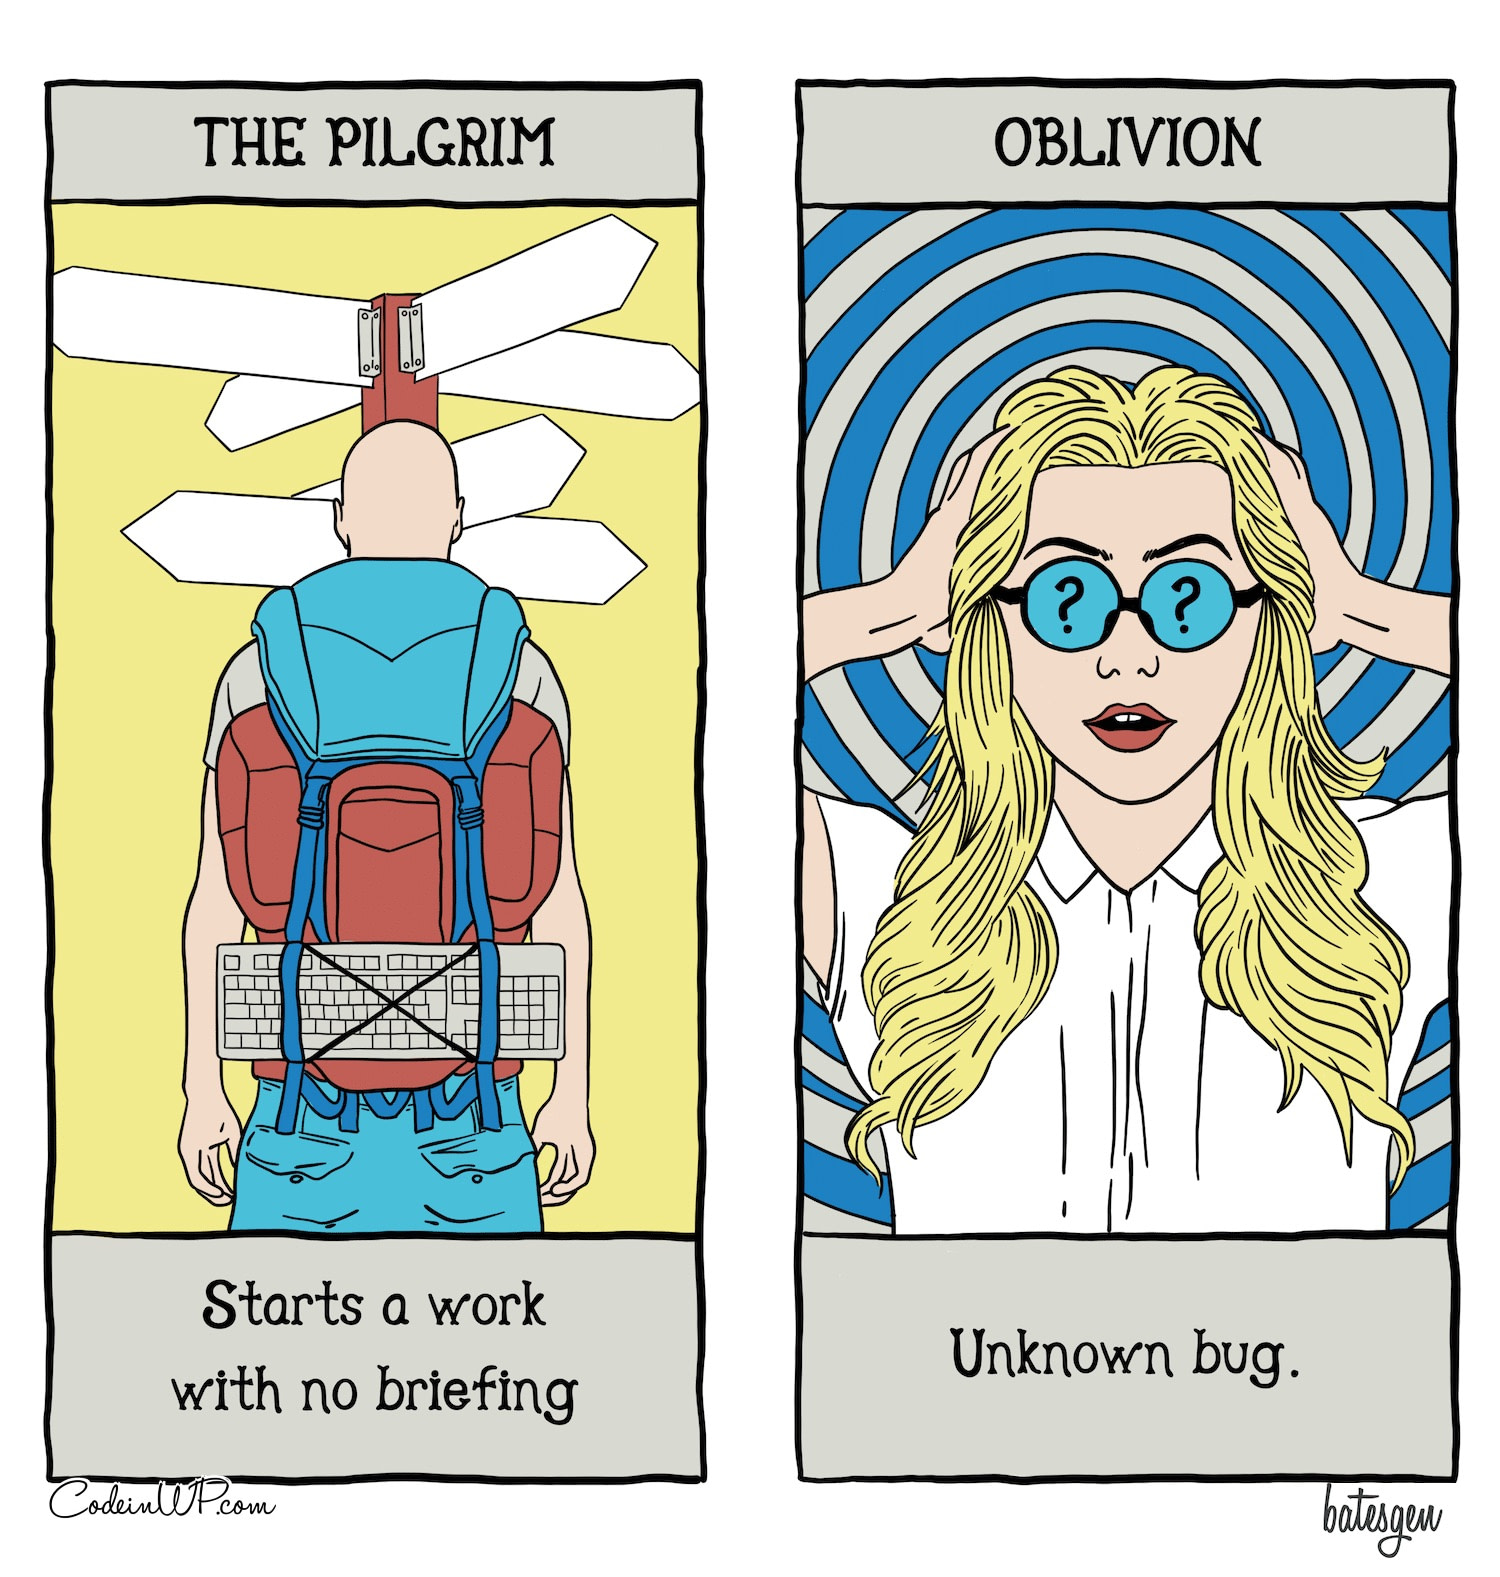 A tarot comic about bugs and people who work without briefings